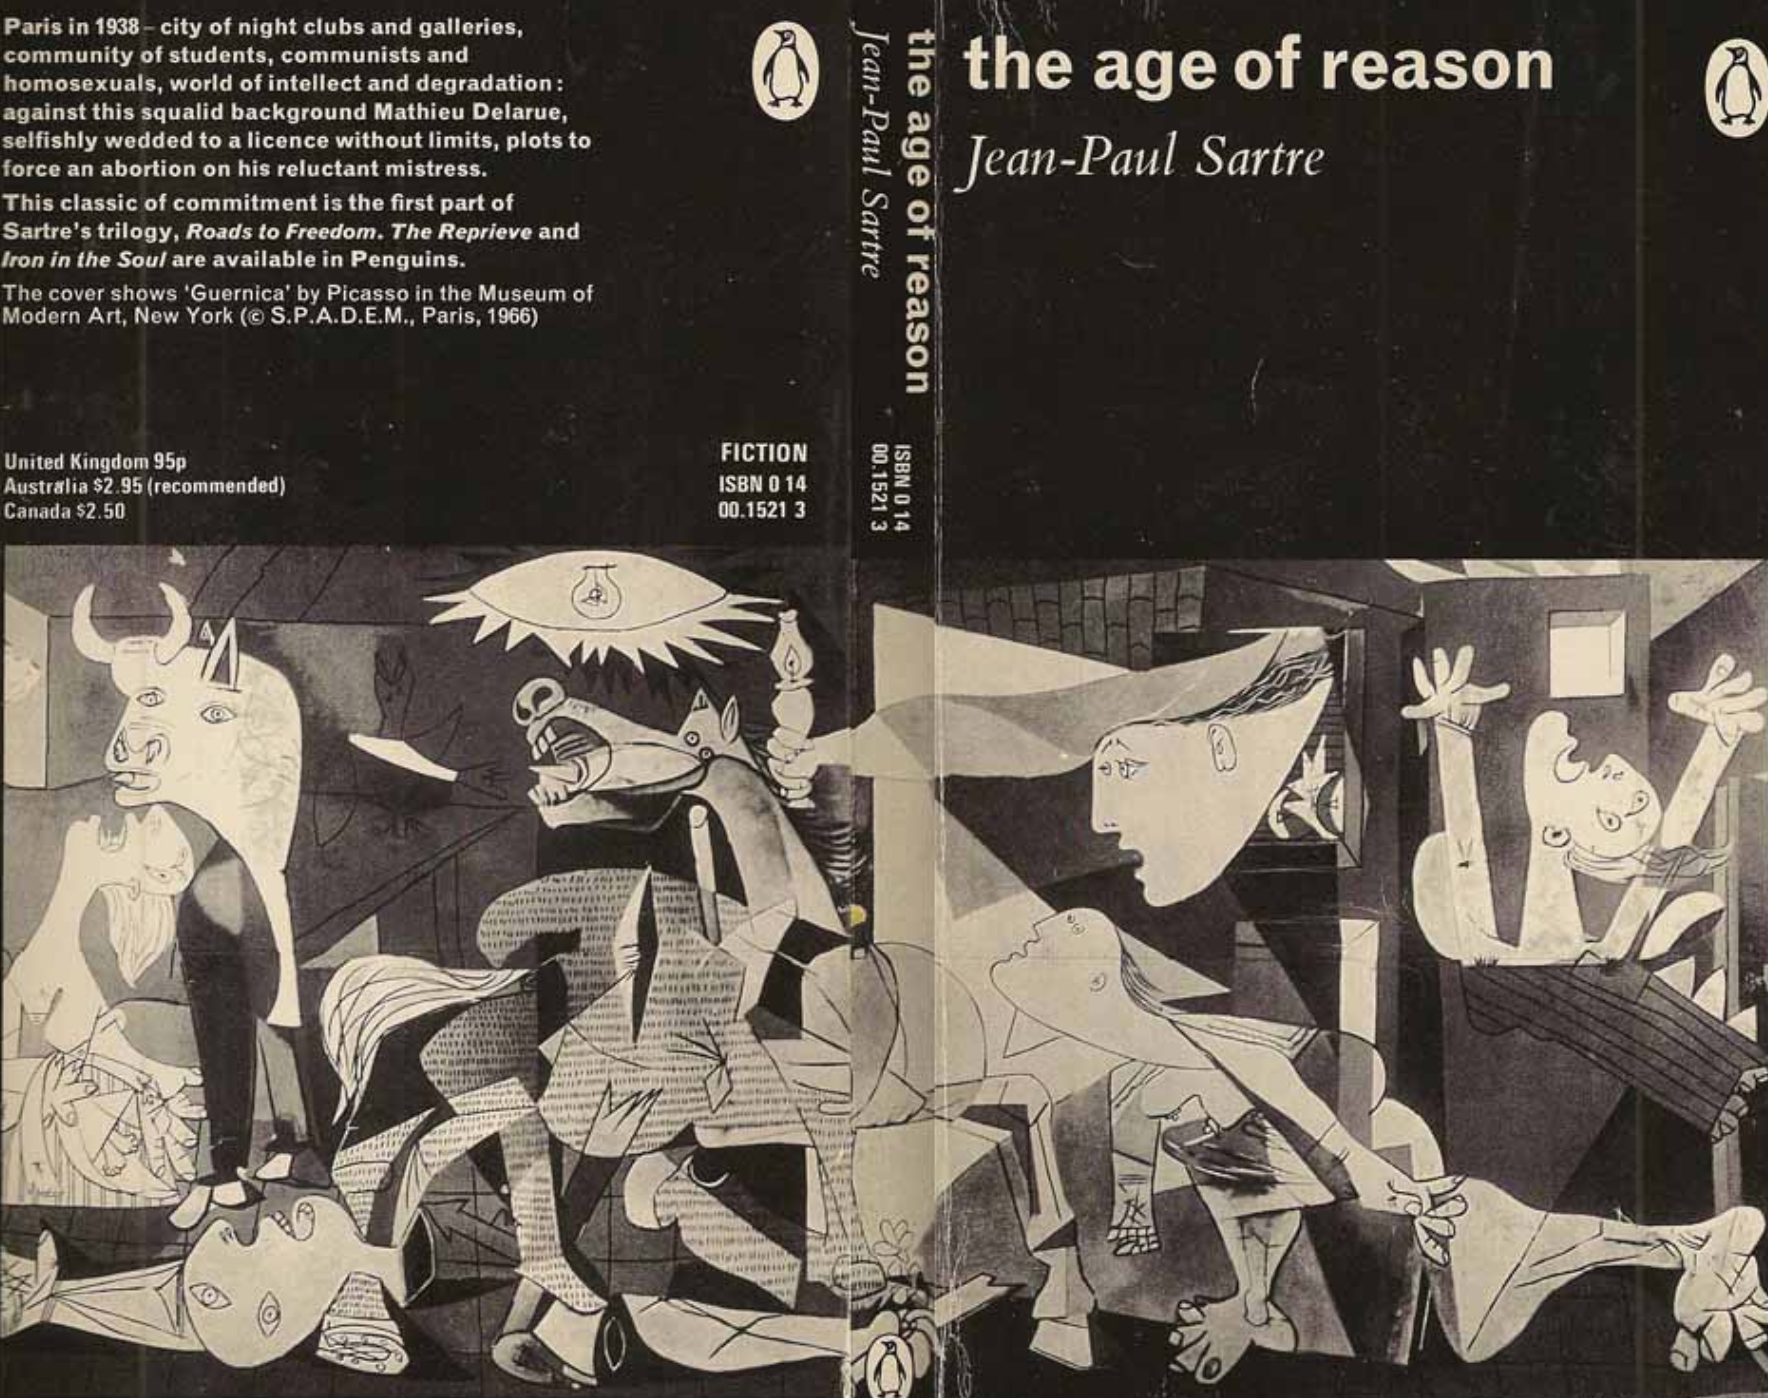 the age of reason jean paul sartre book cover methyl ethyl